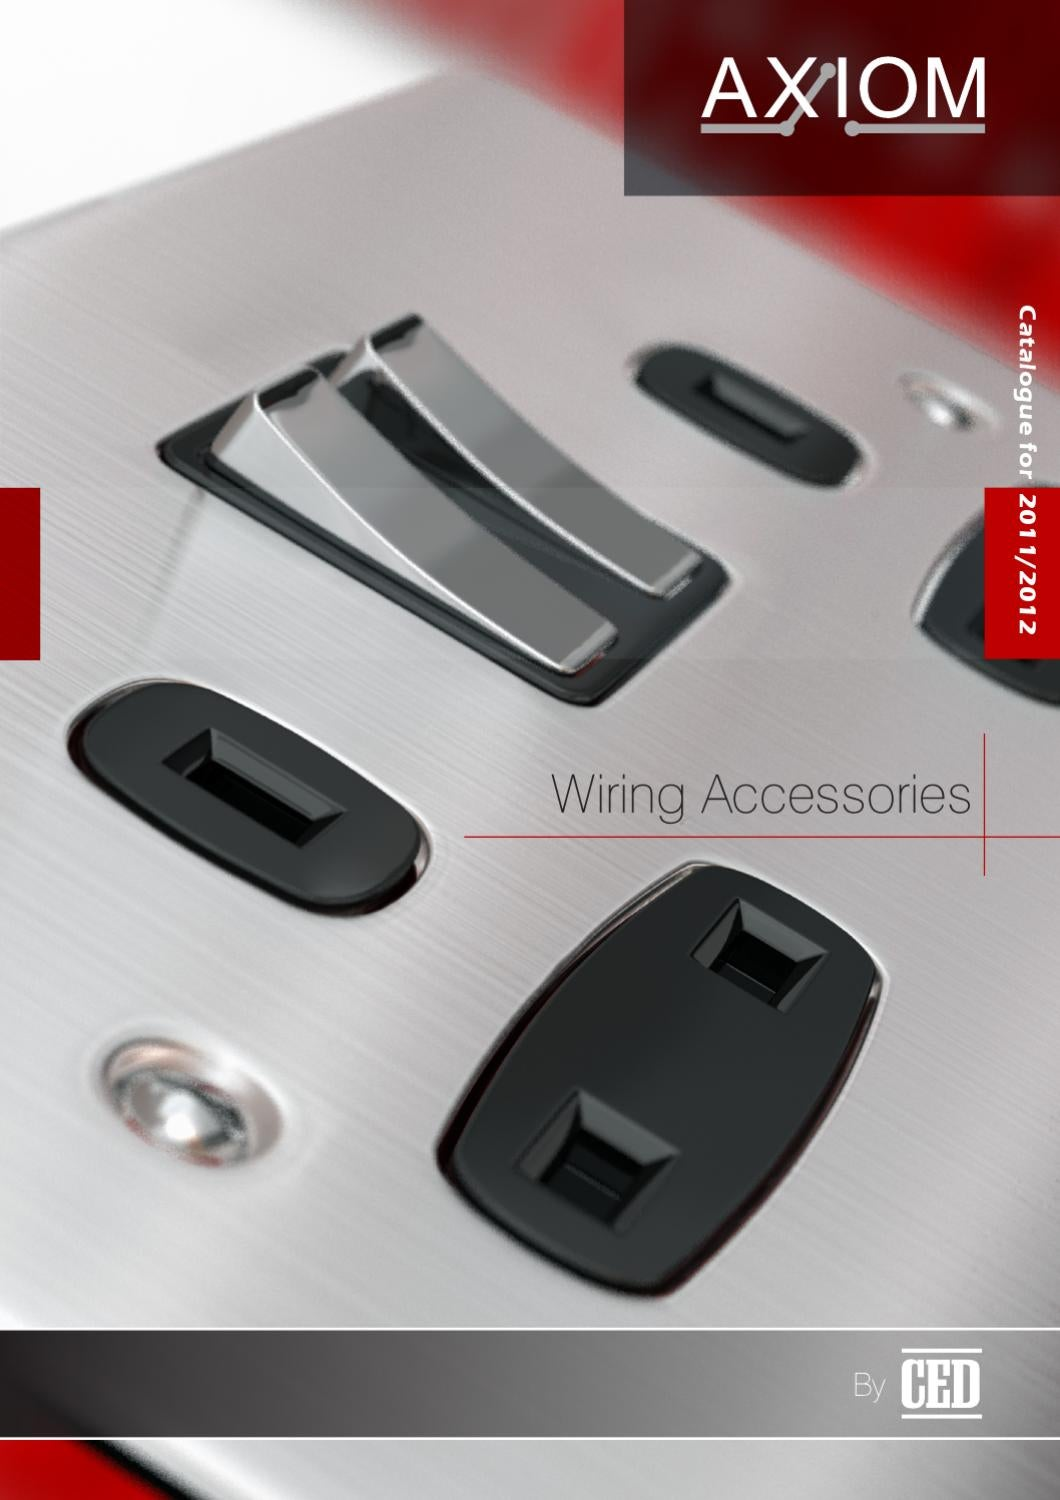 Axiom Wiring Accessories By Ced Elec Issuu Mk